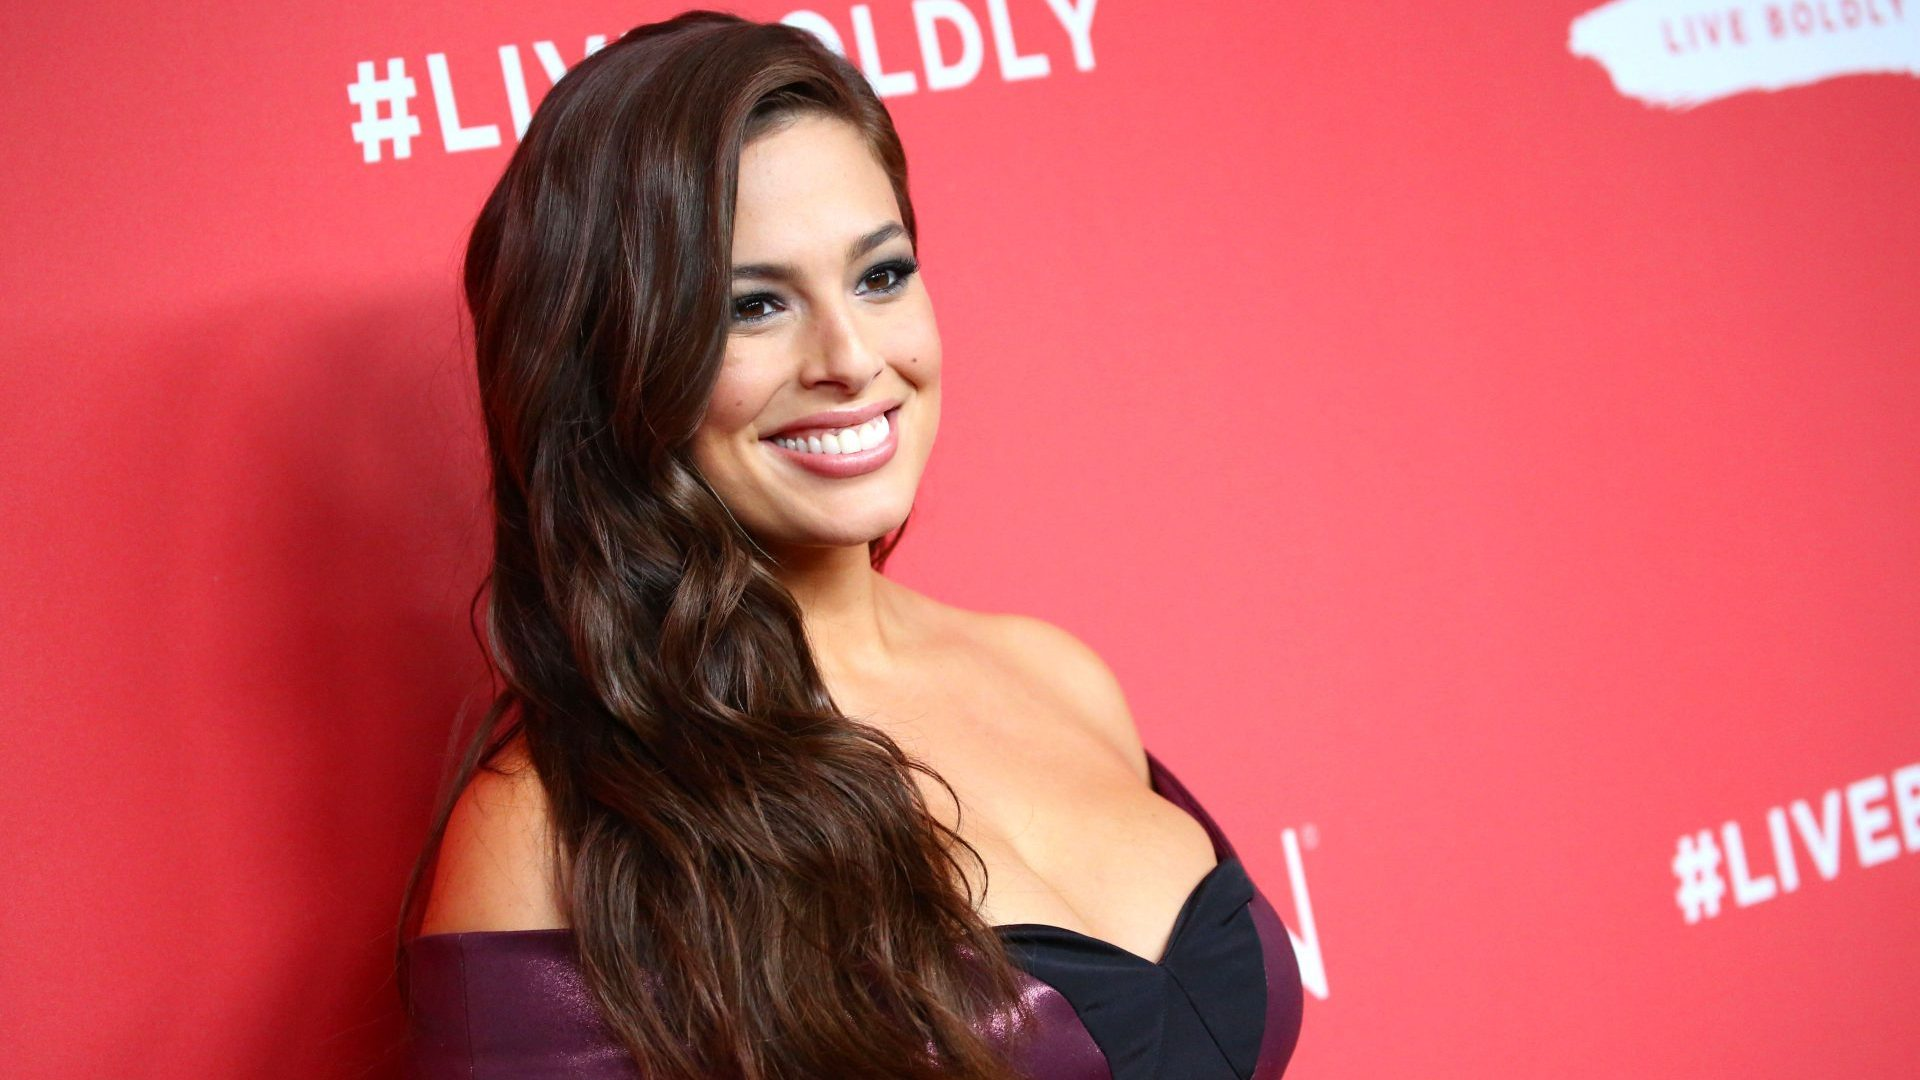 """Ashley Graham Gets Real About Her Stretch Marks: """"Same Me, Few New Stories"""""""